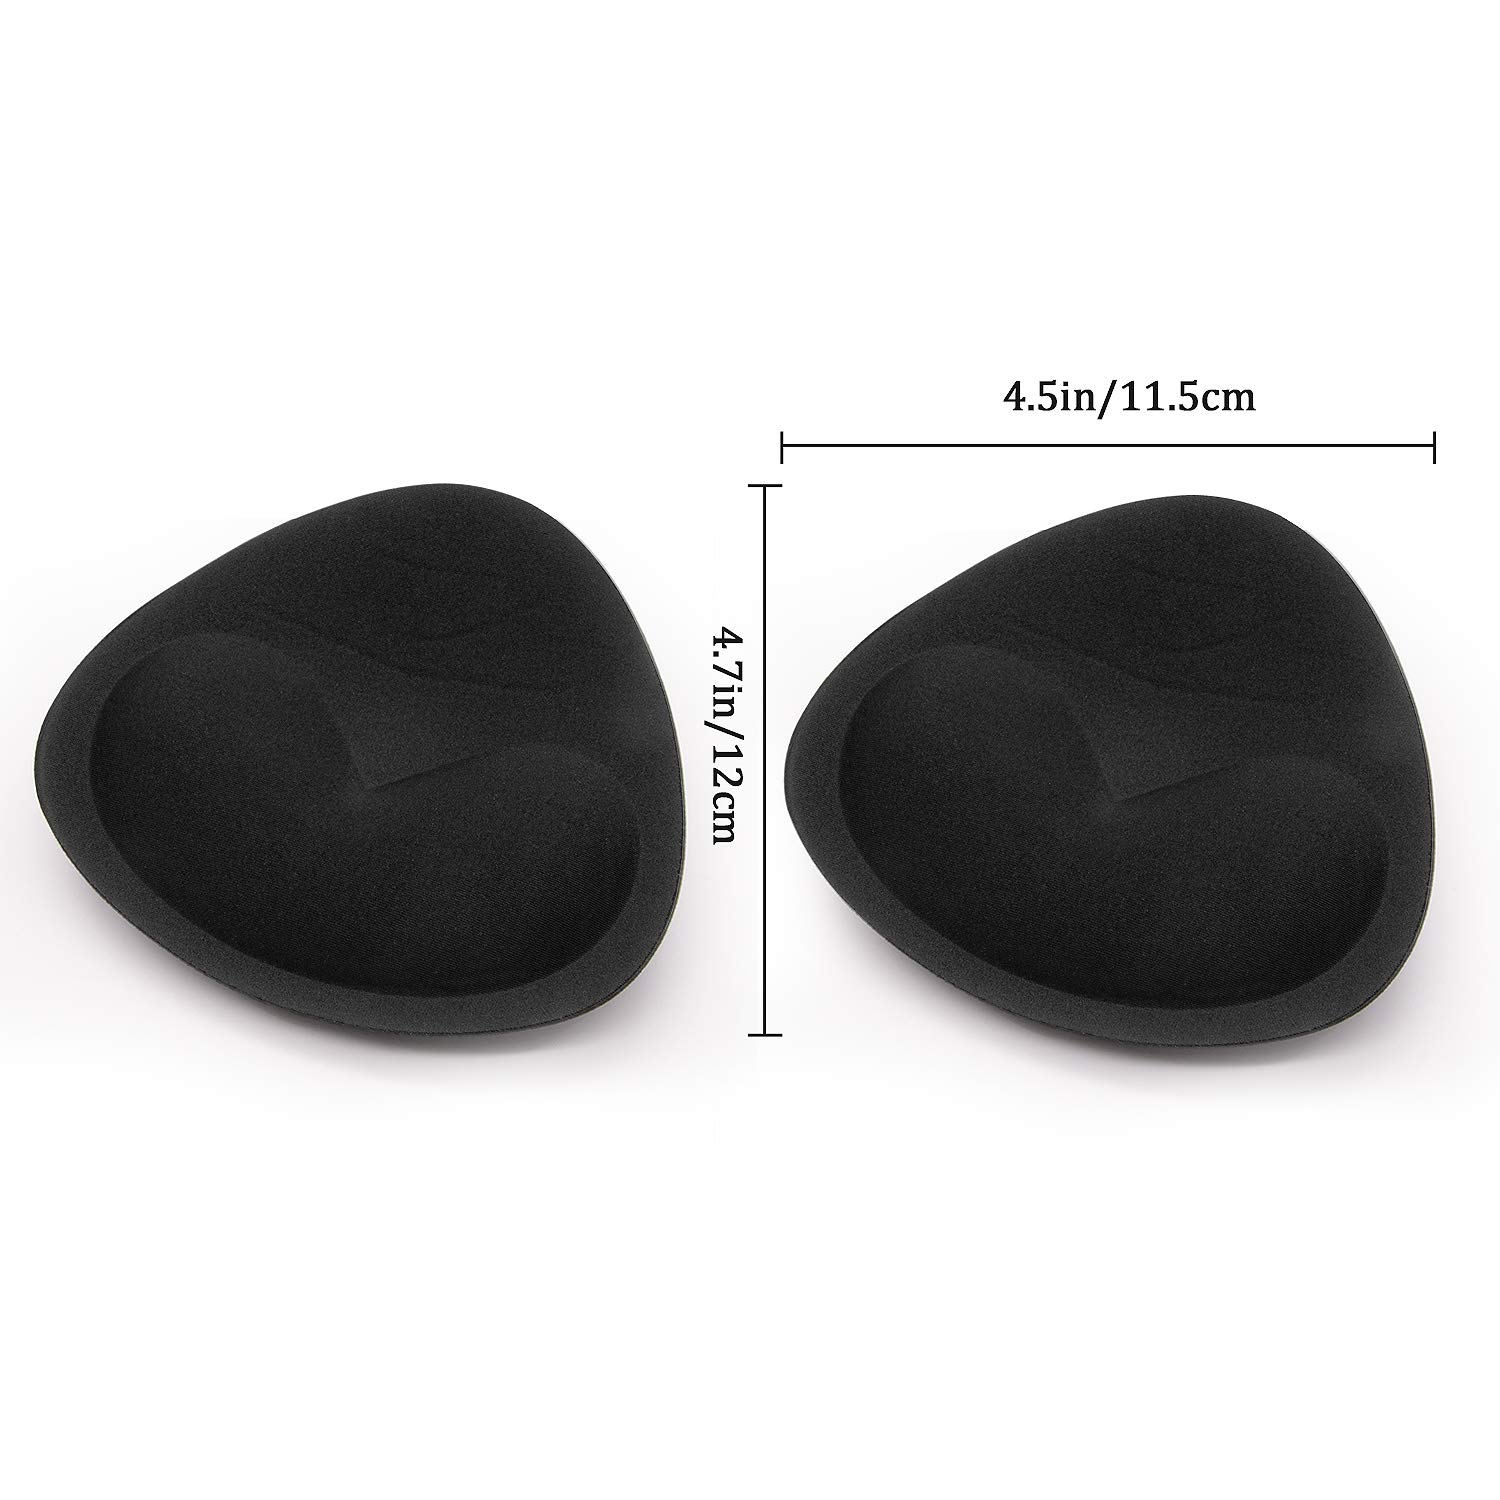 Bra Pads Inserts Women Lady Swimsuit Push up Removable Bra Enhancer Bra Breast Natural Suitable for A B C and D